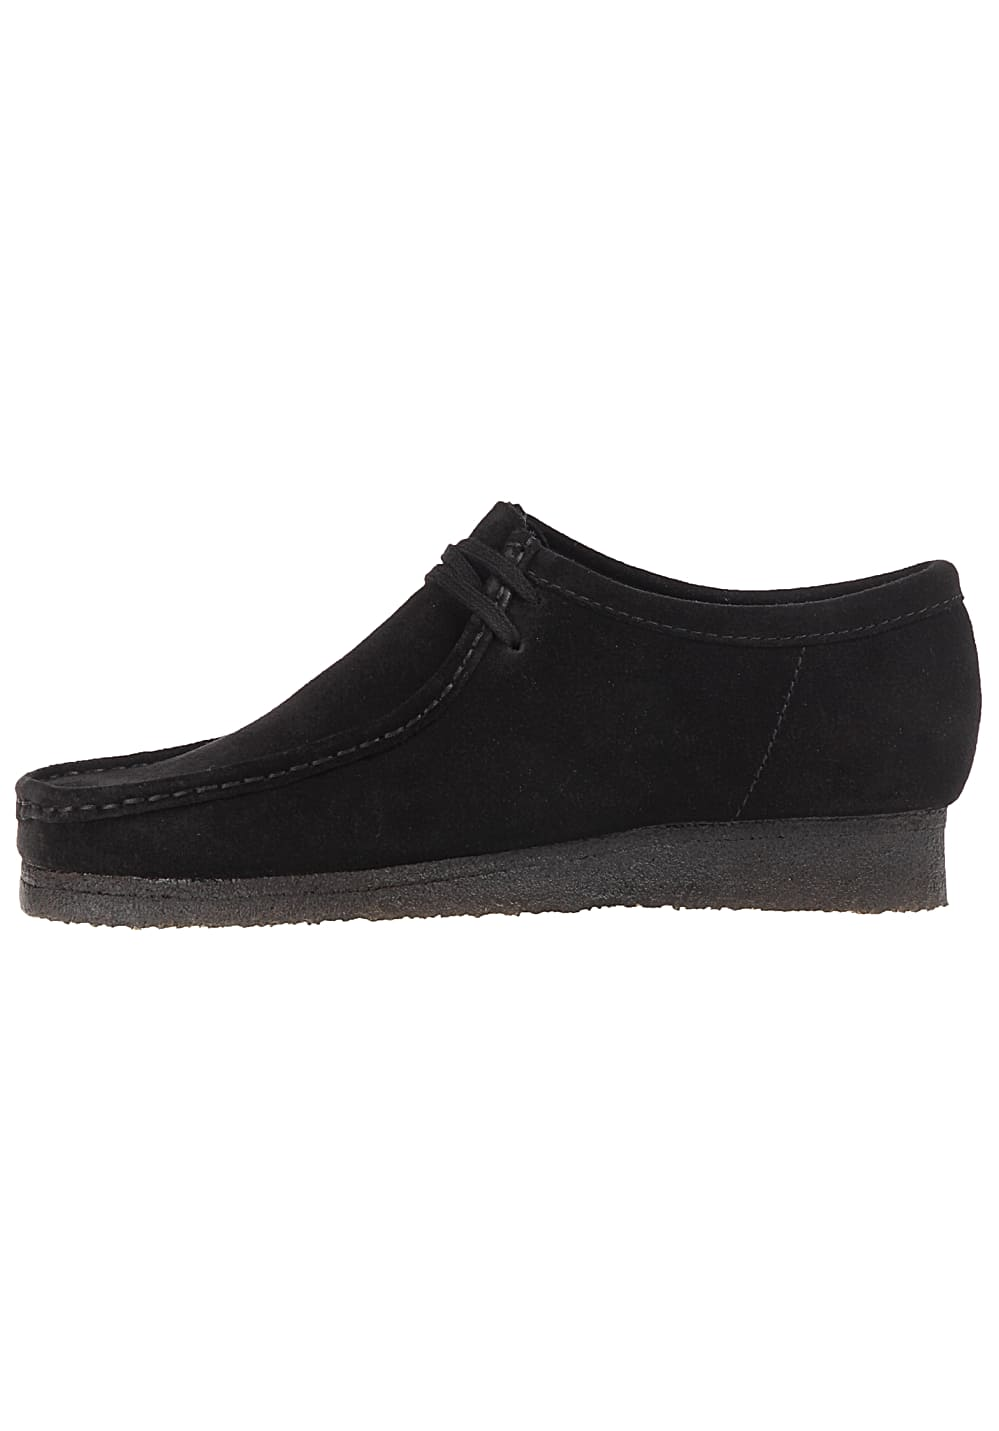 999e0a11a22e62 CLARKS ORIGINALS Wallabee - Fashion schoen voor Heren - Zwart - Planet  Sports